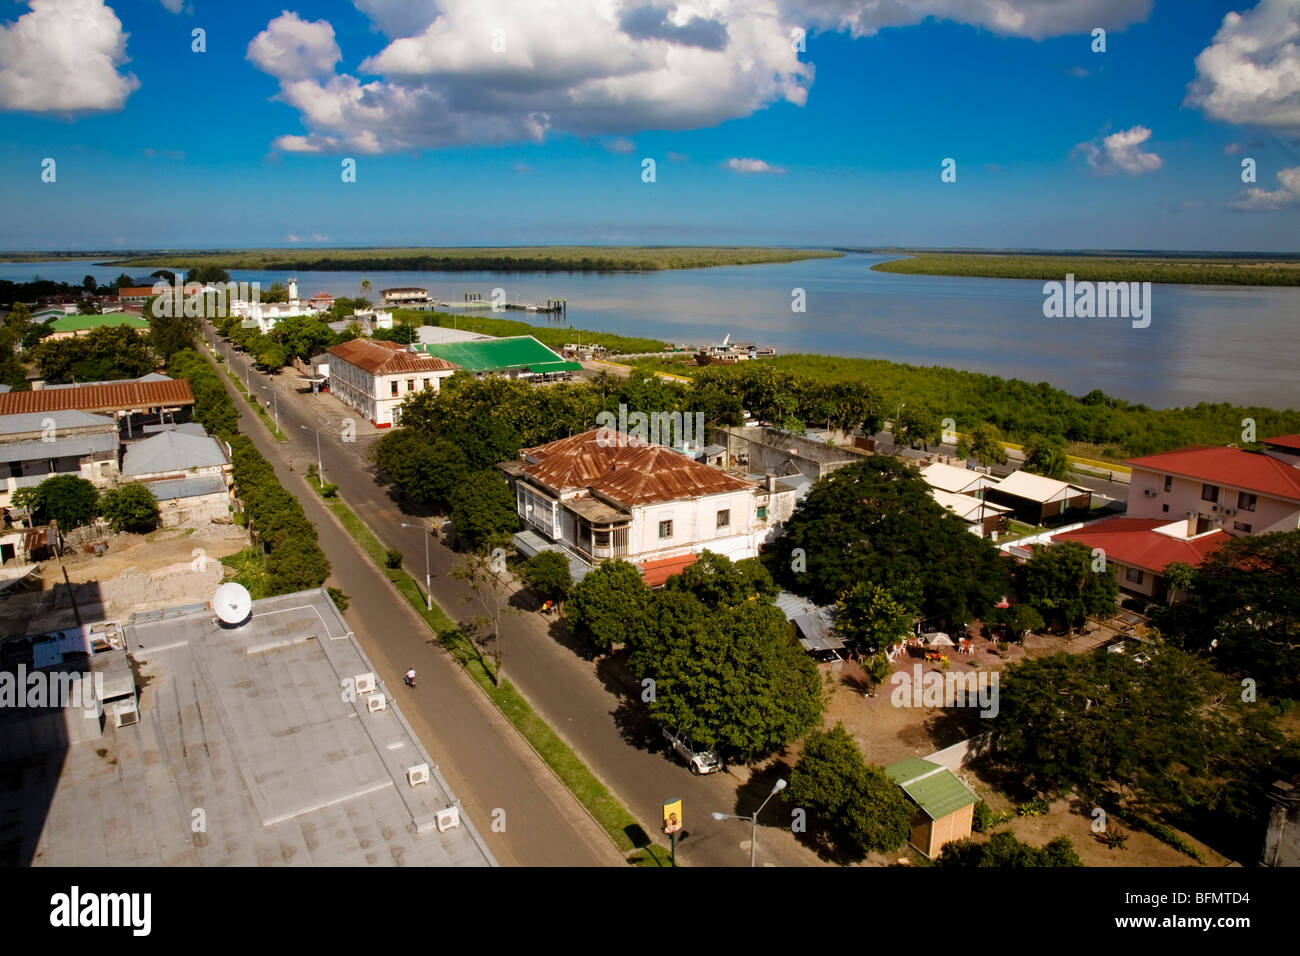 Mozambique, Quelimane. A view of Quelimane from the top of the Hotel Chuabo on Avenida Samora Machel. - Stock Image